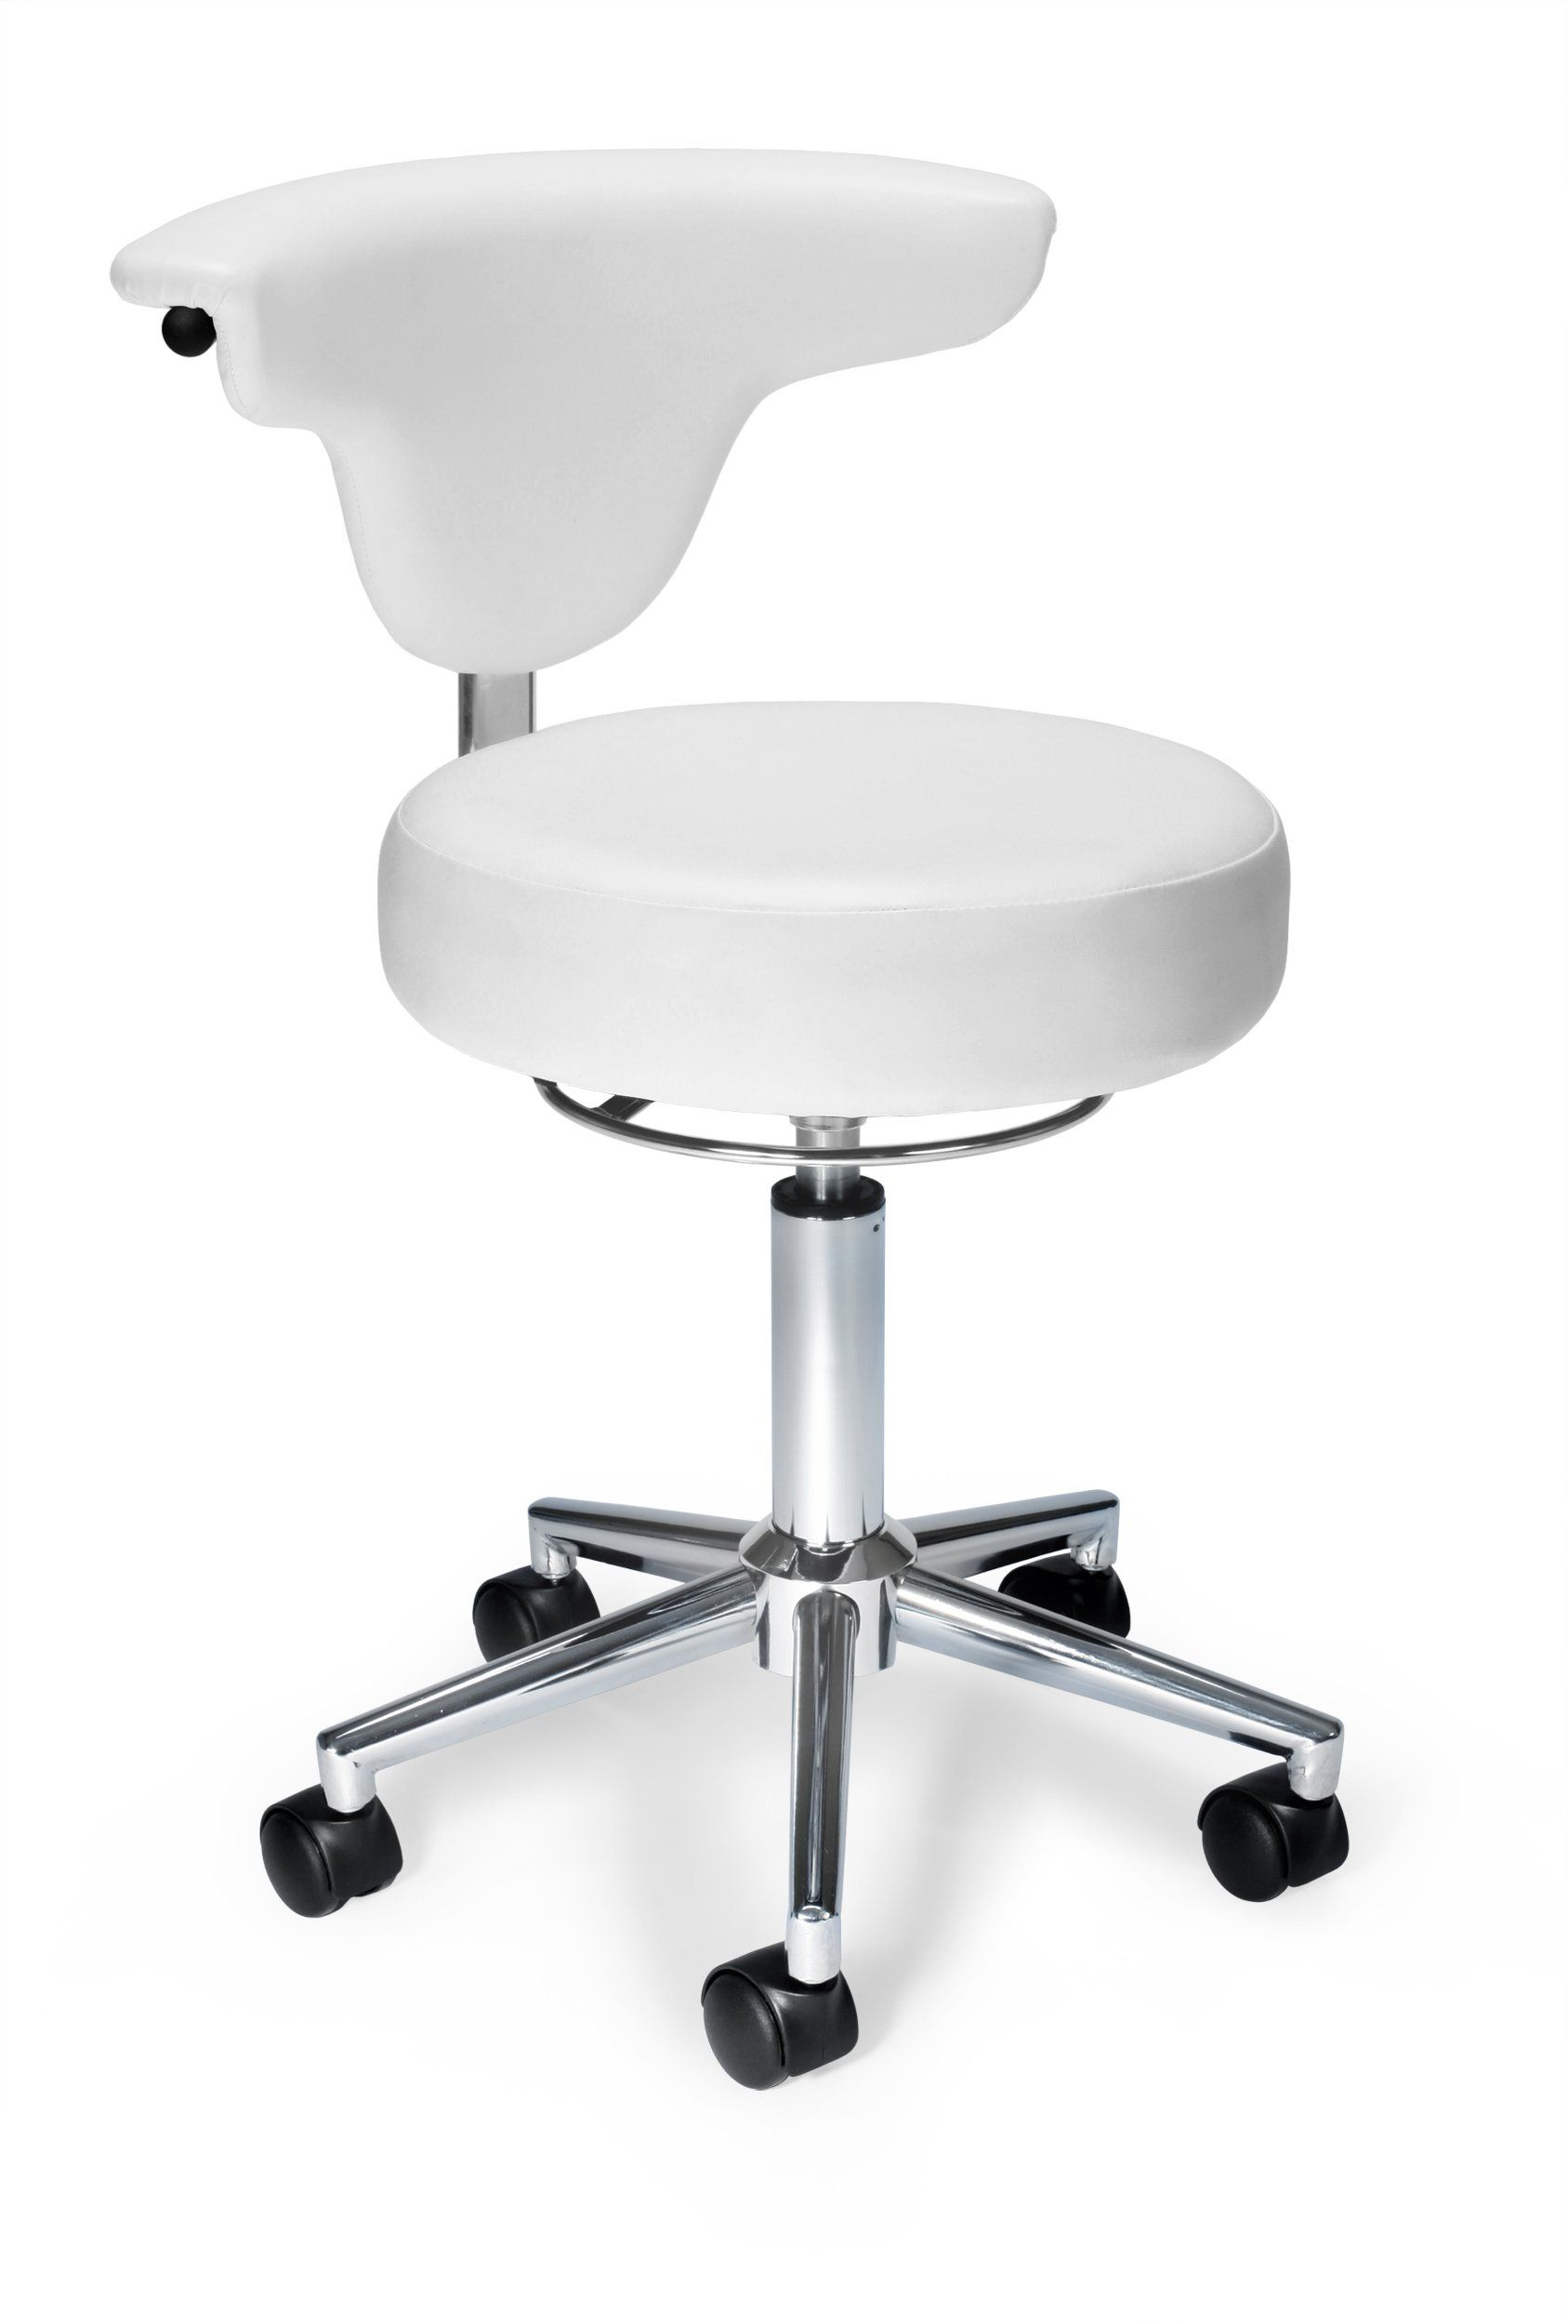 Ofm 910white Antimicrobial Bact Anatomy Vinyl Chair White You Can Get Additional Details At The Image Link This Is An A Vinyl Chairs Chair Chair Upholstery